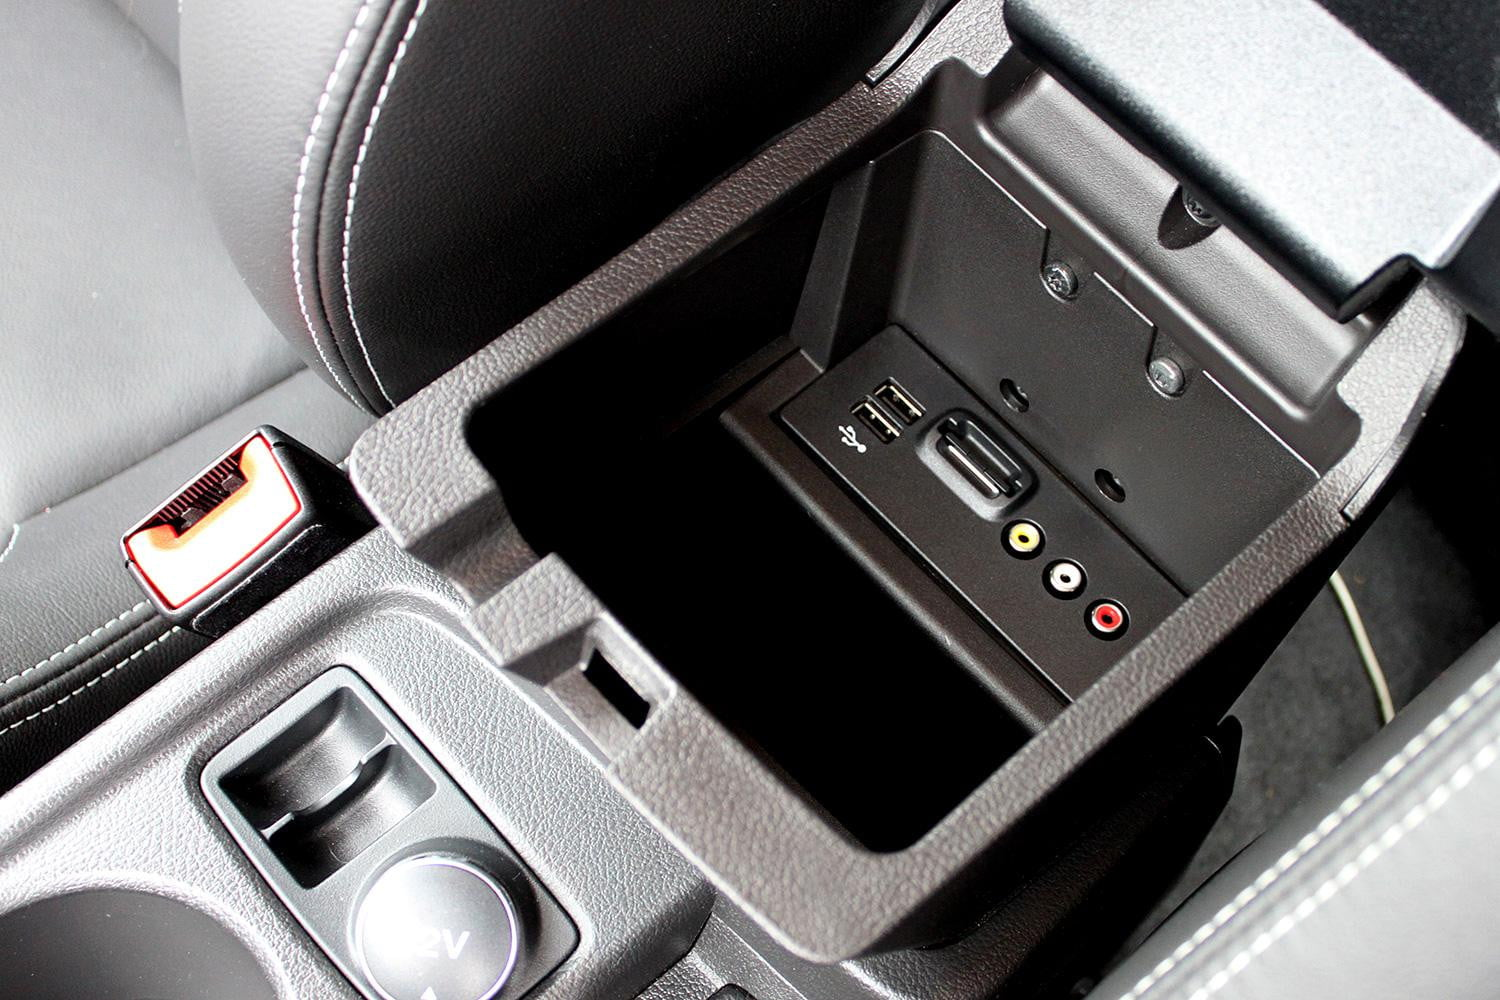 2014 Ford Focus St Review Digital Trends Frame 2013 Center Console Ports